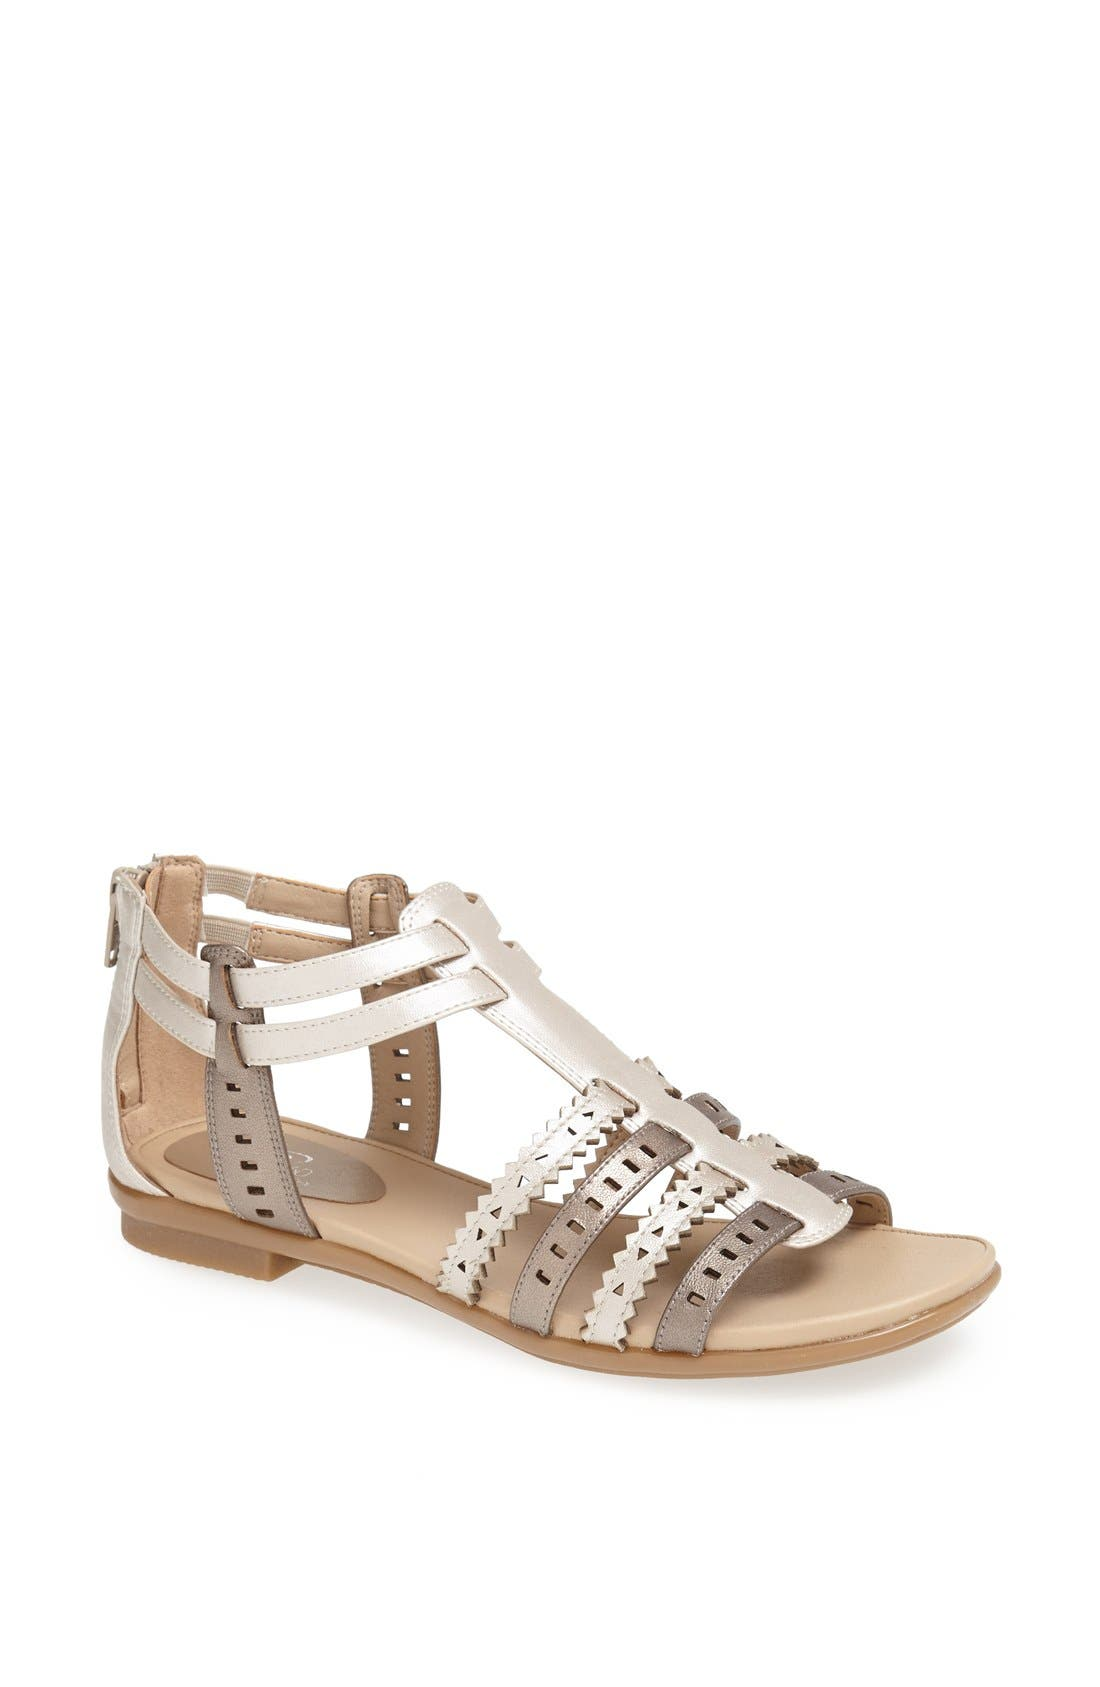 Alternate Image 1 Selected - Easy Spirit 'e360 - Karelly' Pinked & Perforated Leather Back Zip Sandal (Women)